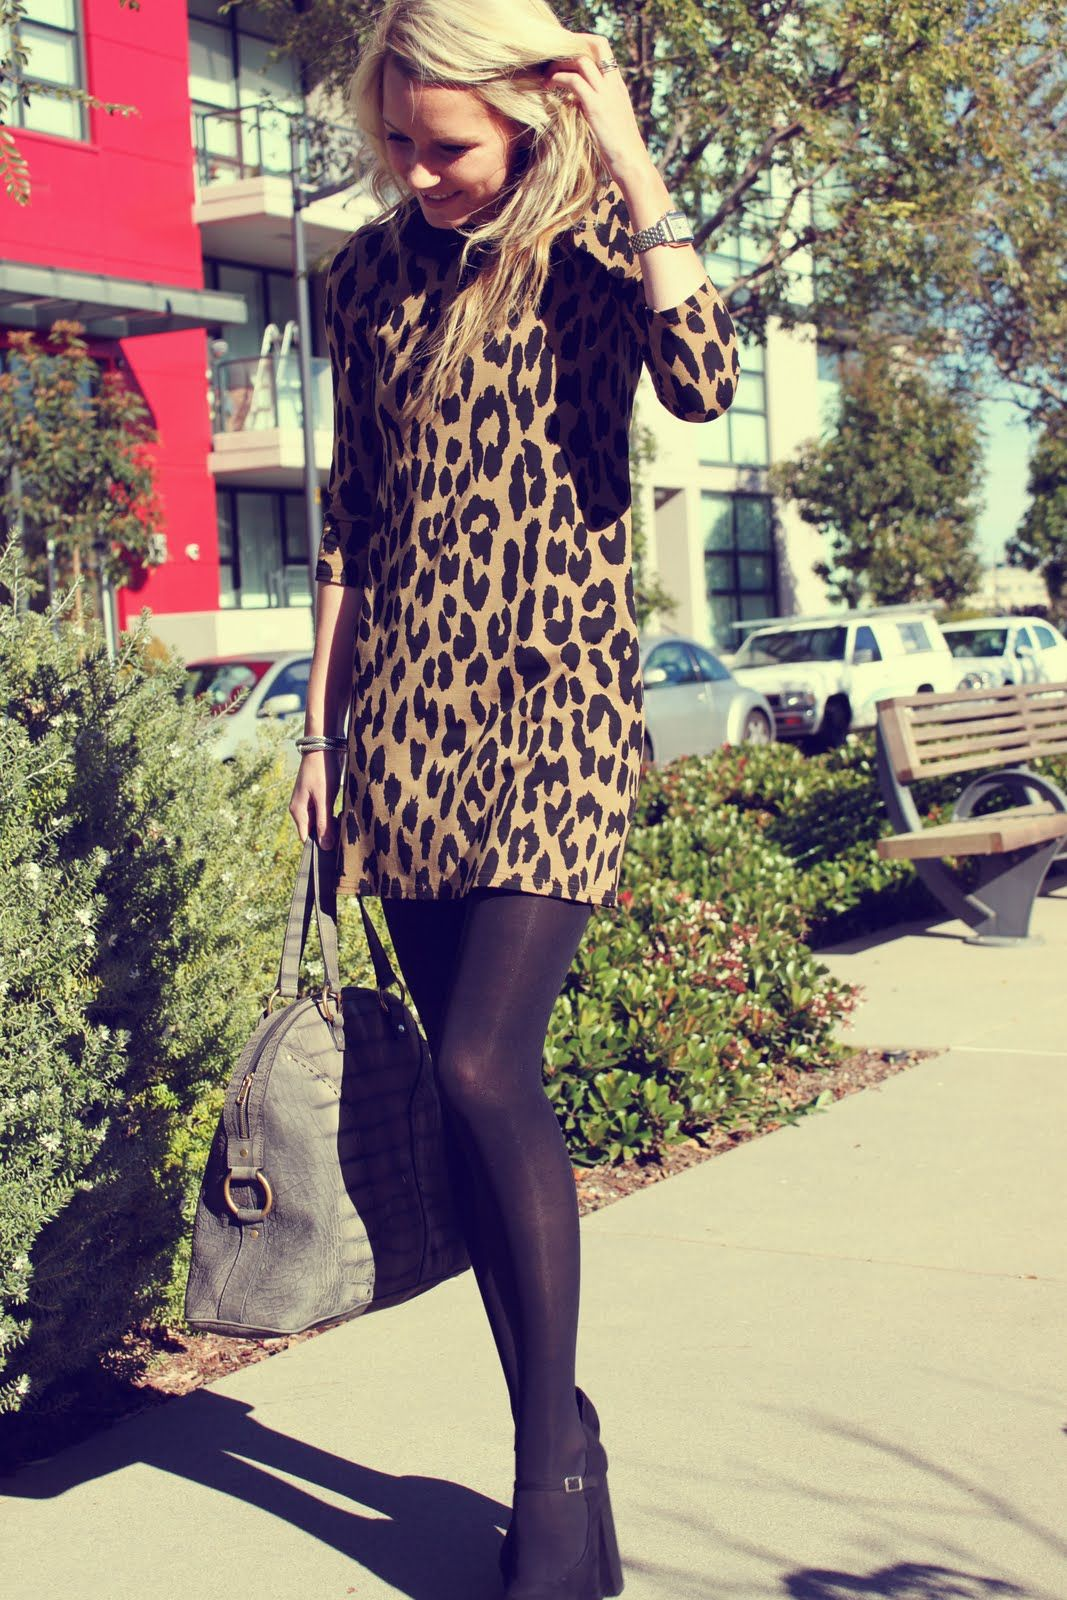 15e02fcabd57a1 Leopard print dress with tights...yes, THIS is how you wear an ultrashort  dress.